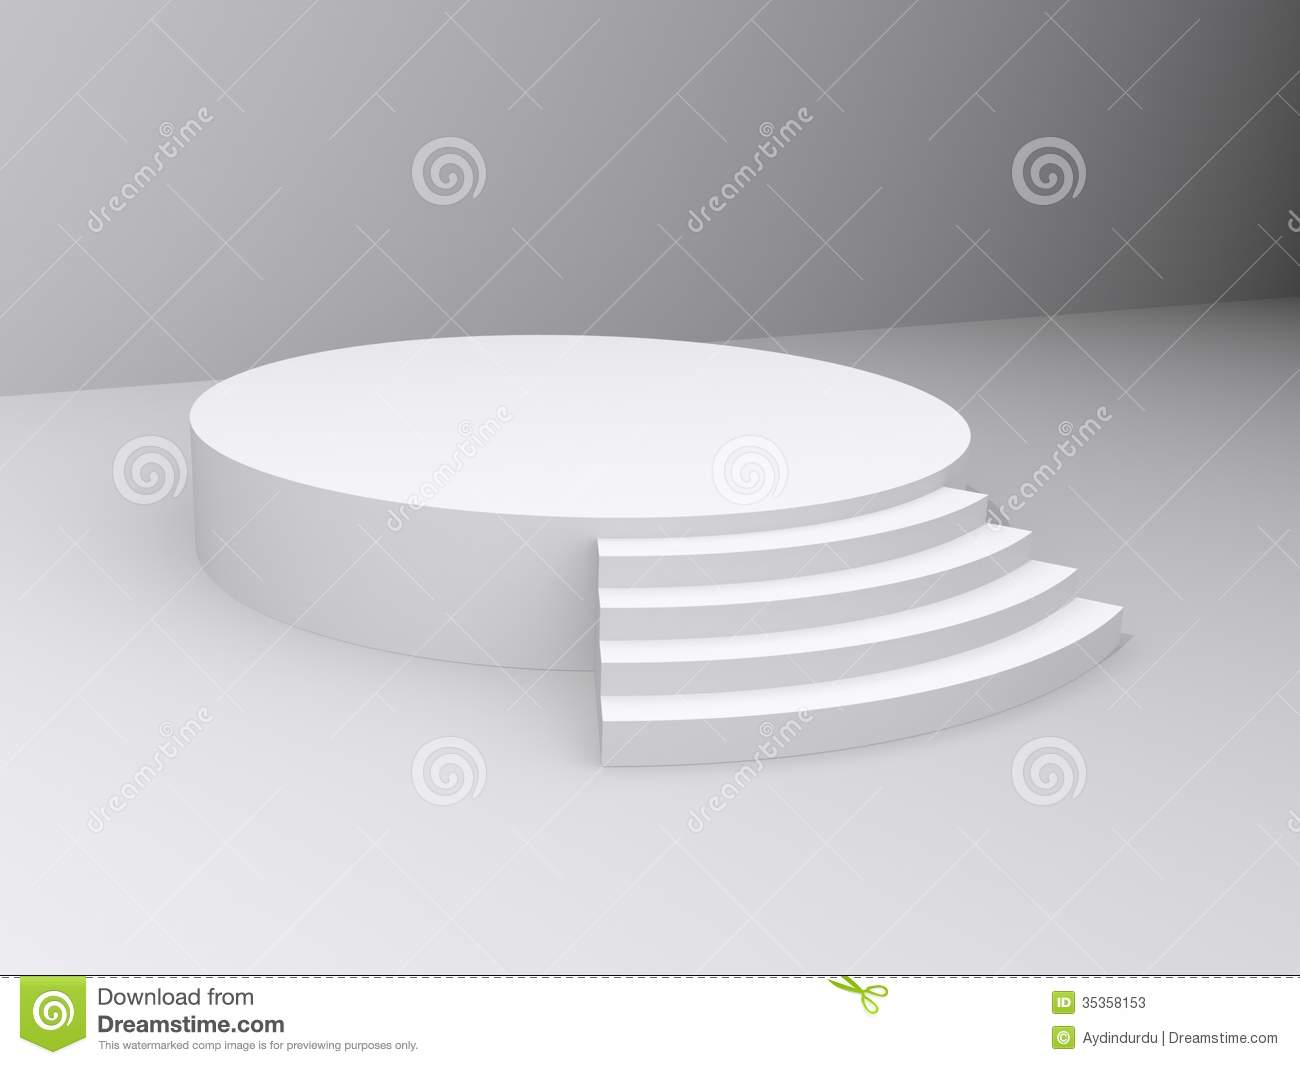 Round, white, illustrated platform or stage with steps in a simple ...